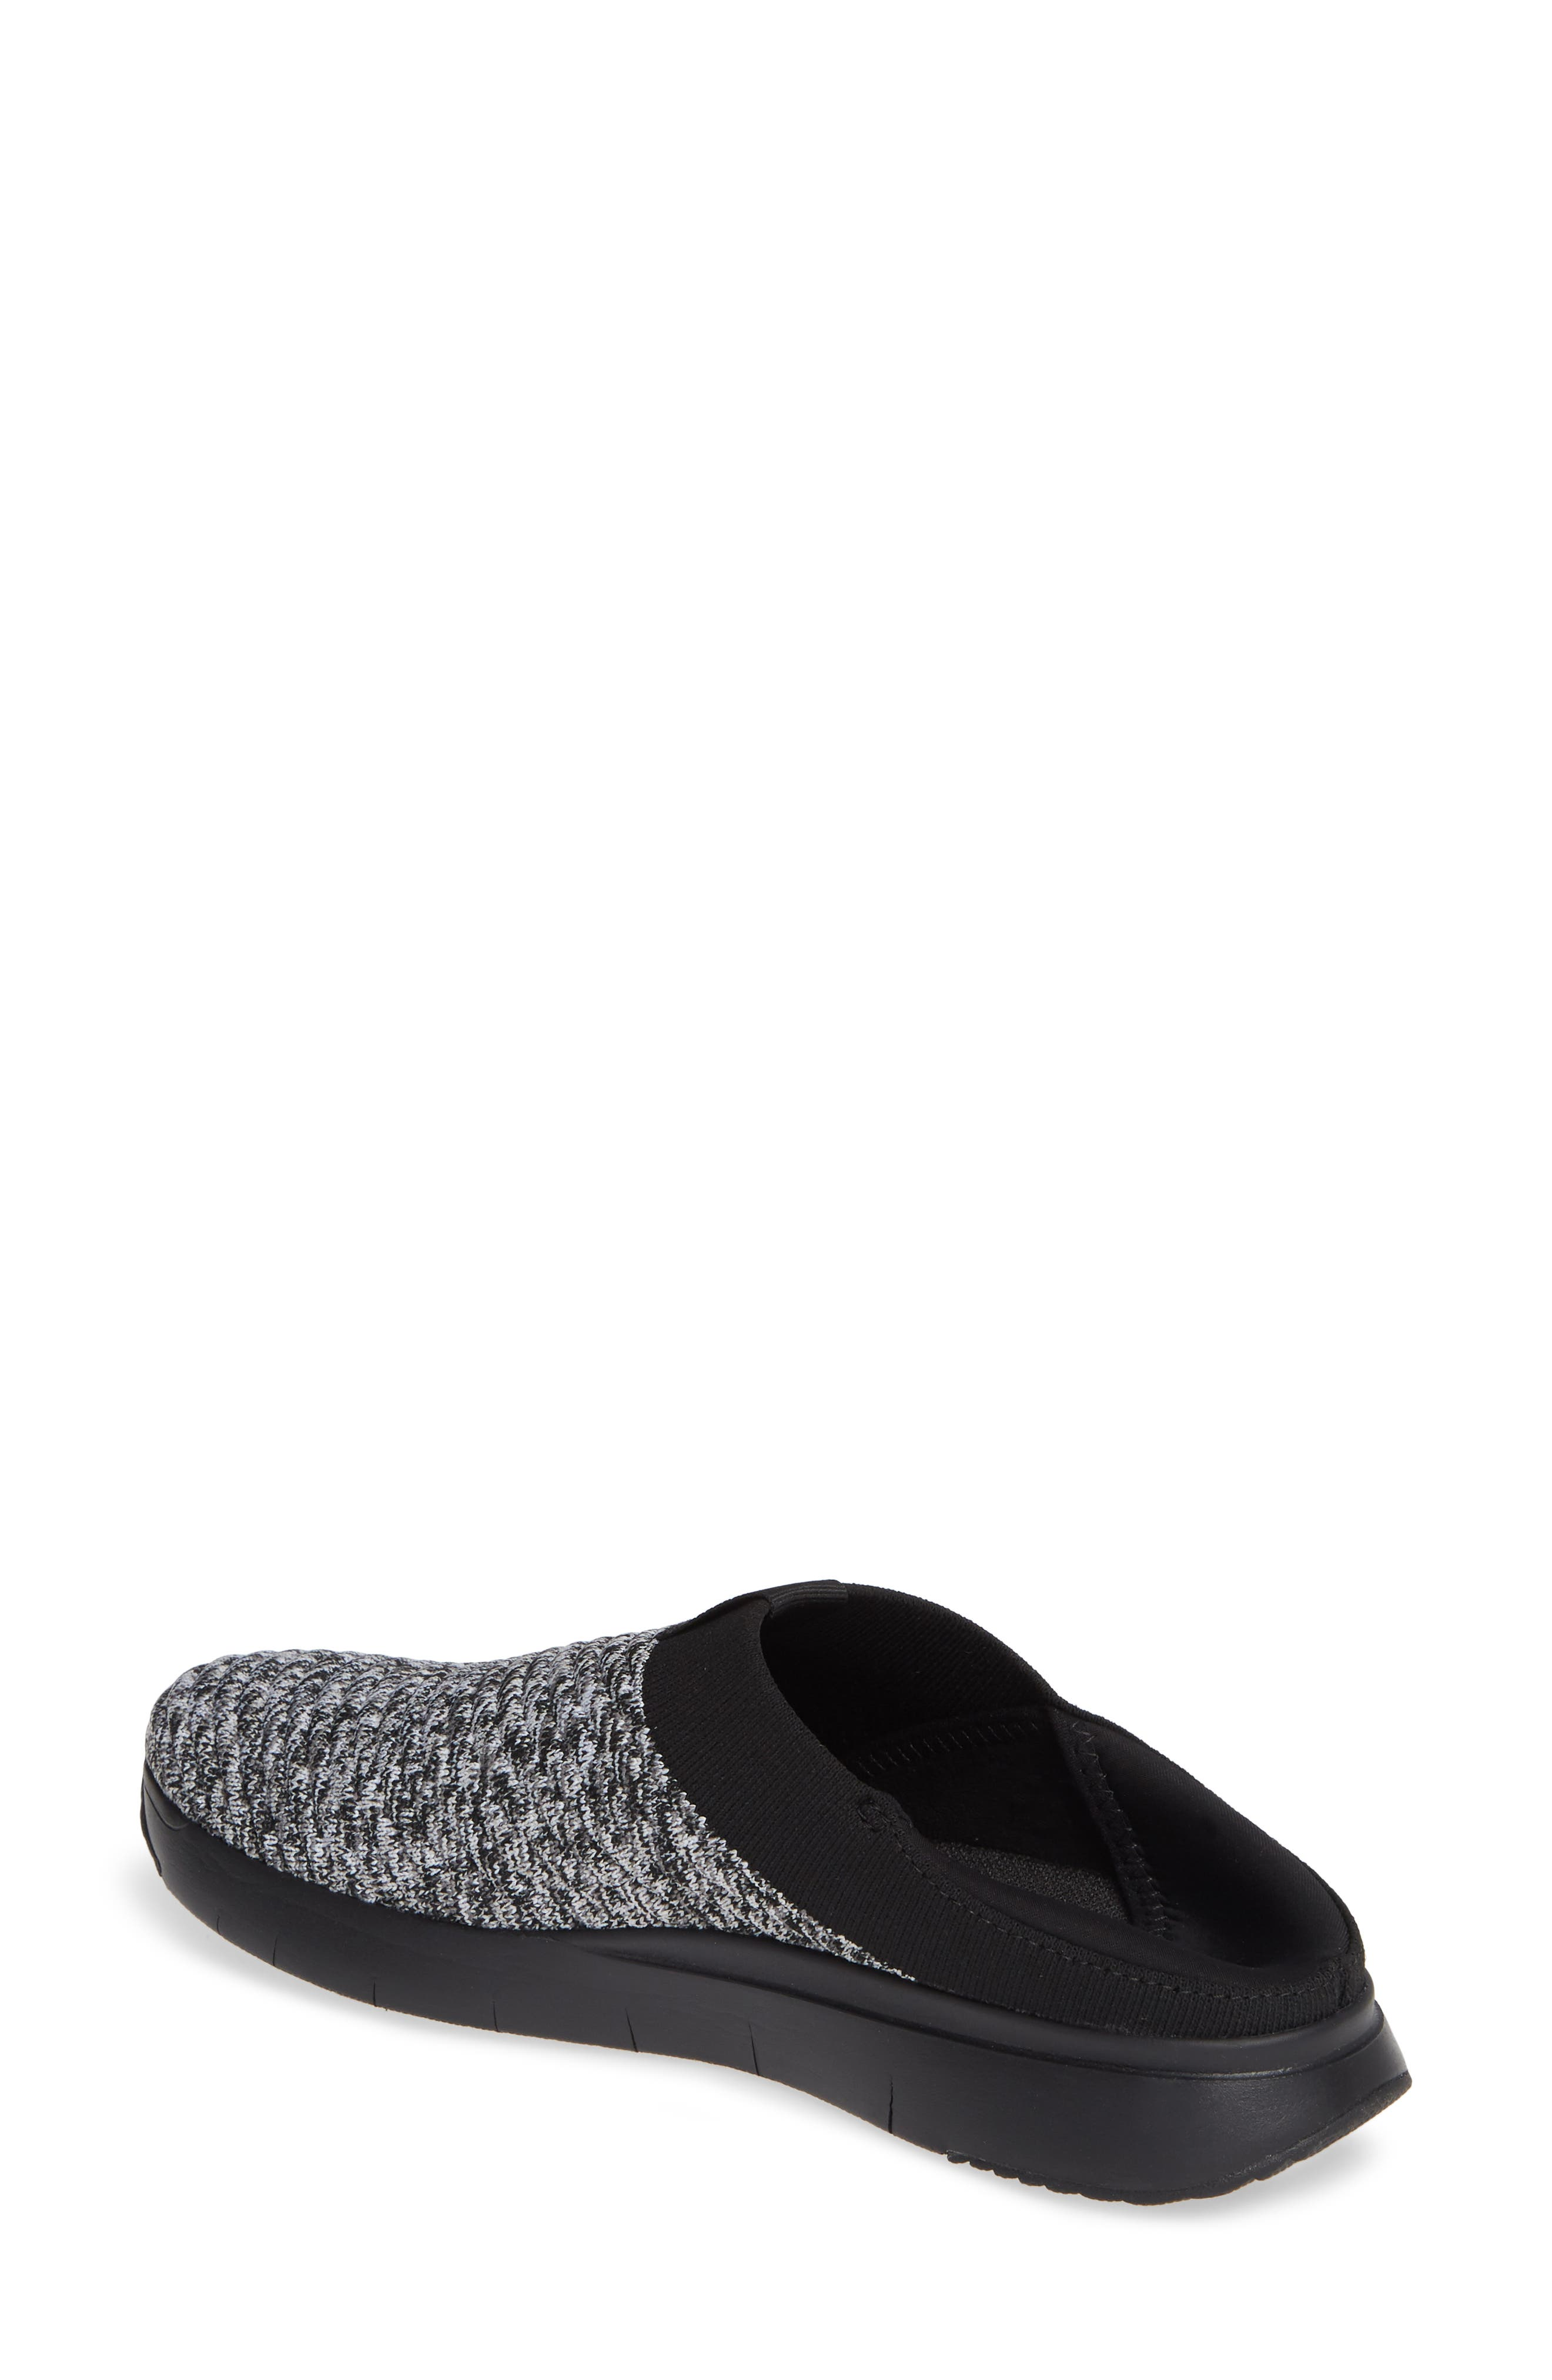 Artknit<sup>™</sup> Convertible Slip-On Sneaker,                             Alternate thumbnail 3, color,                             BLACK MIX